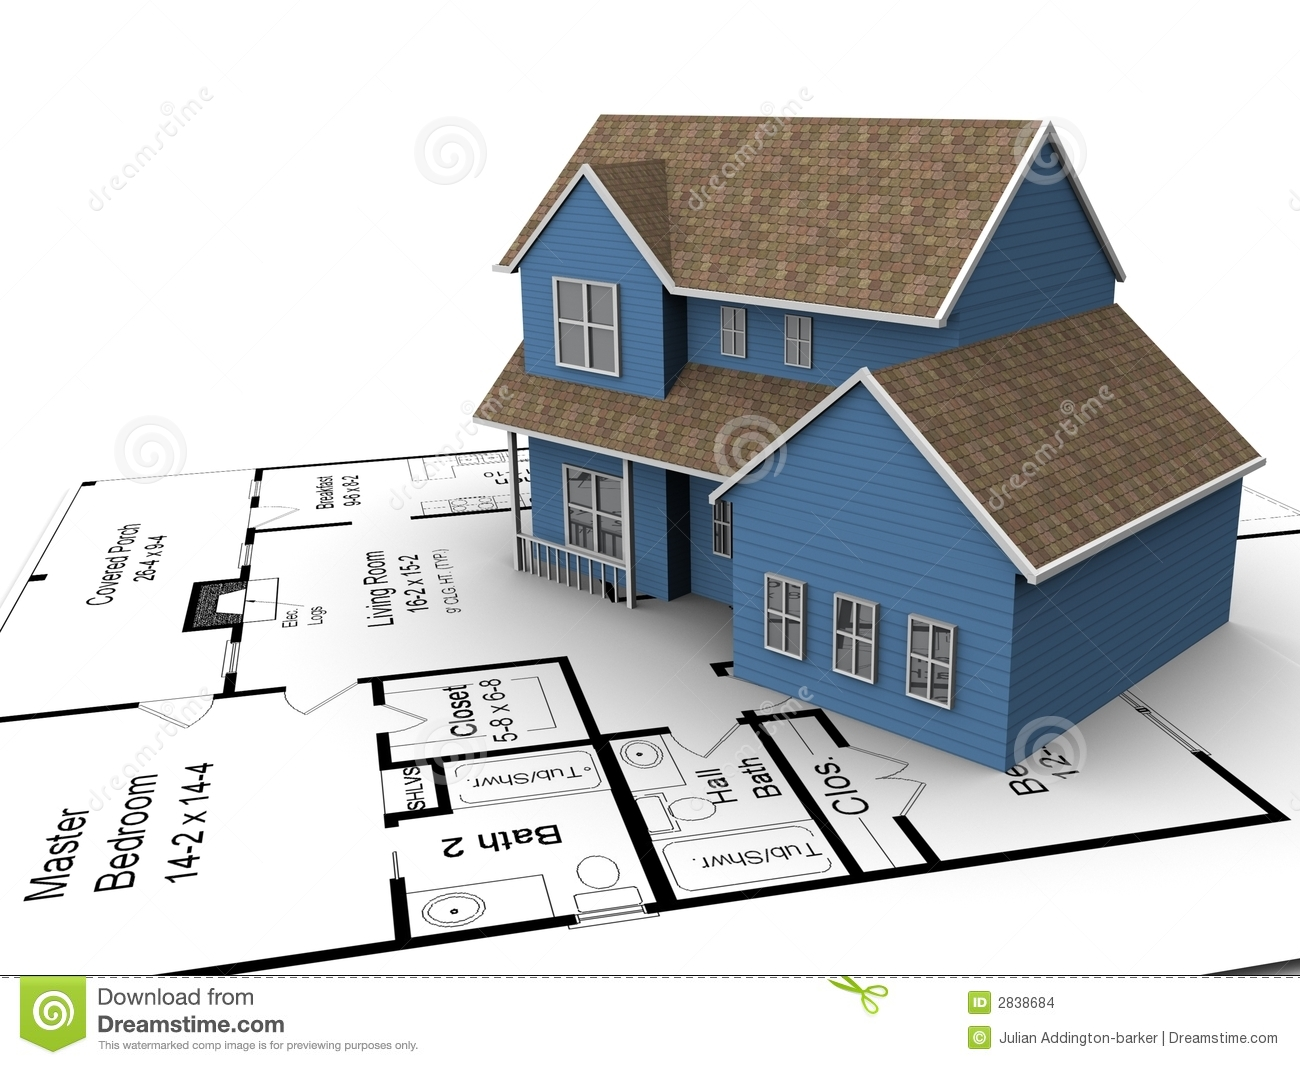 New house plans stock illustration image of design for Latest design house plan